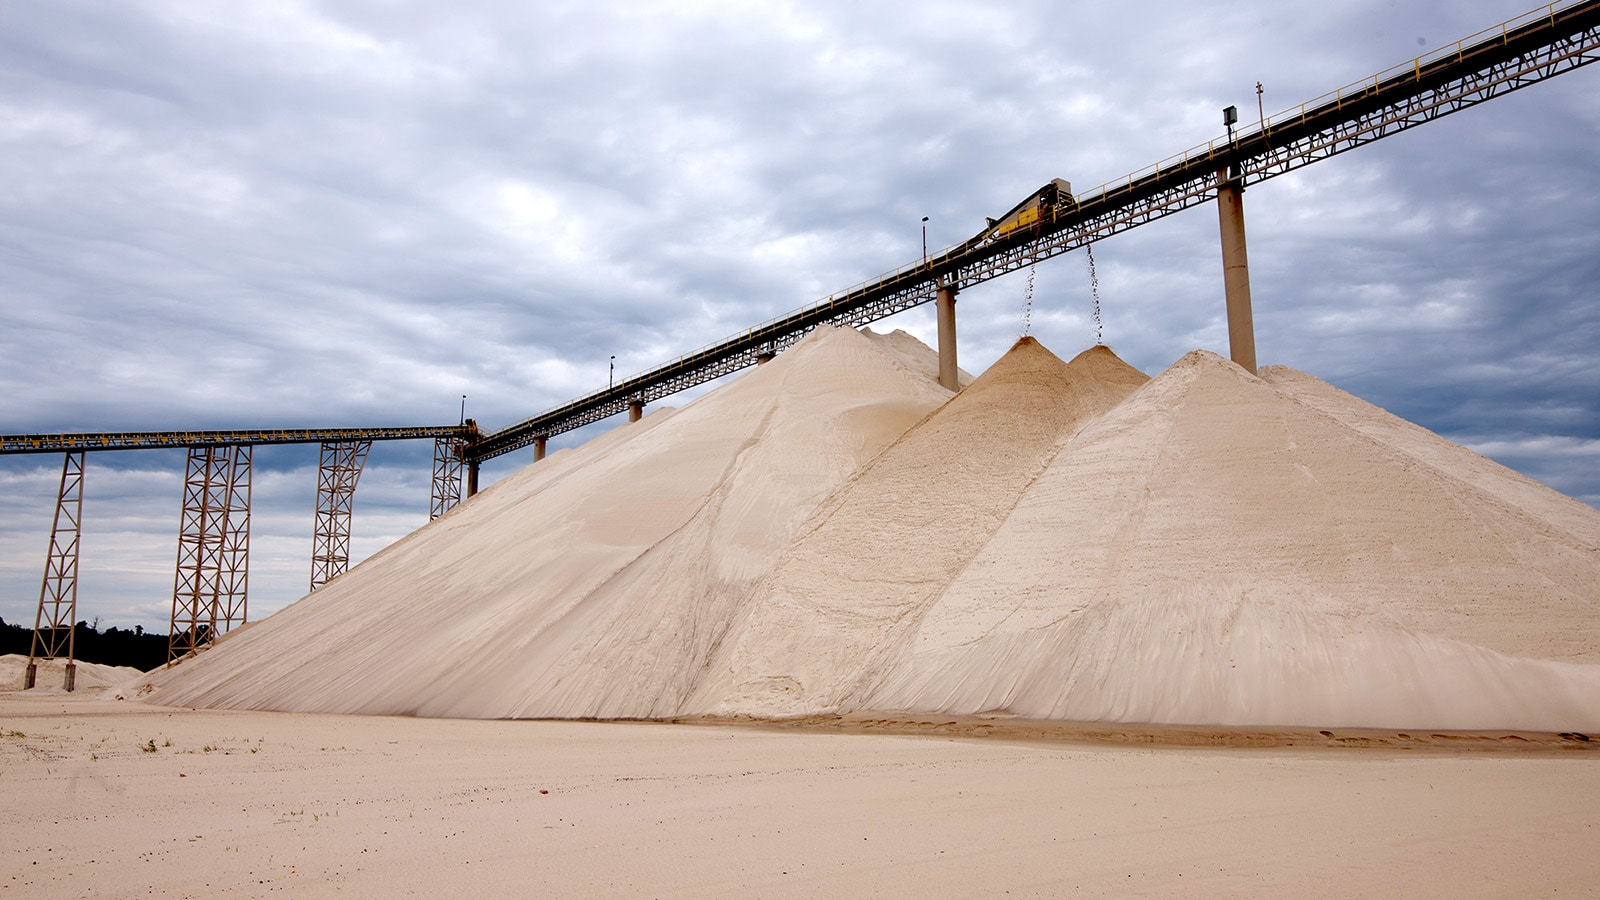 A conveyer drops loads onto already massive piles of sand